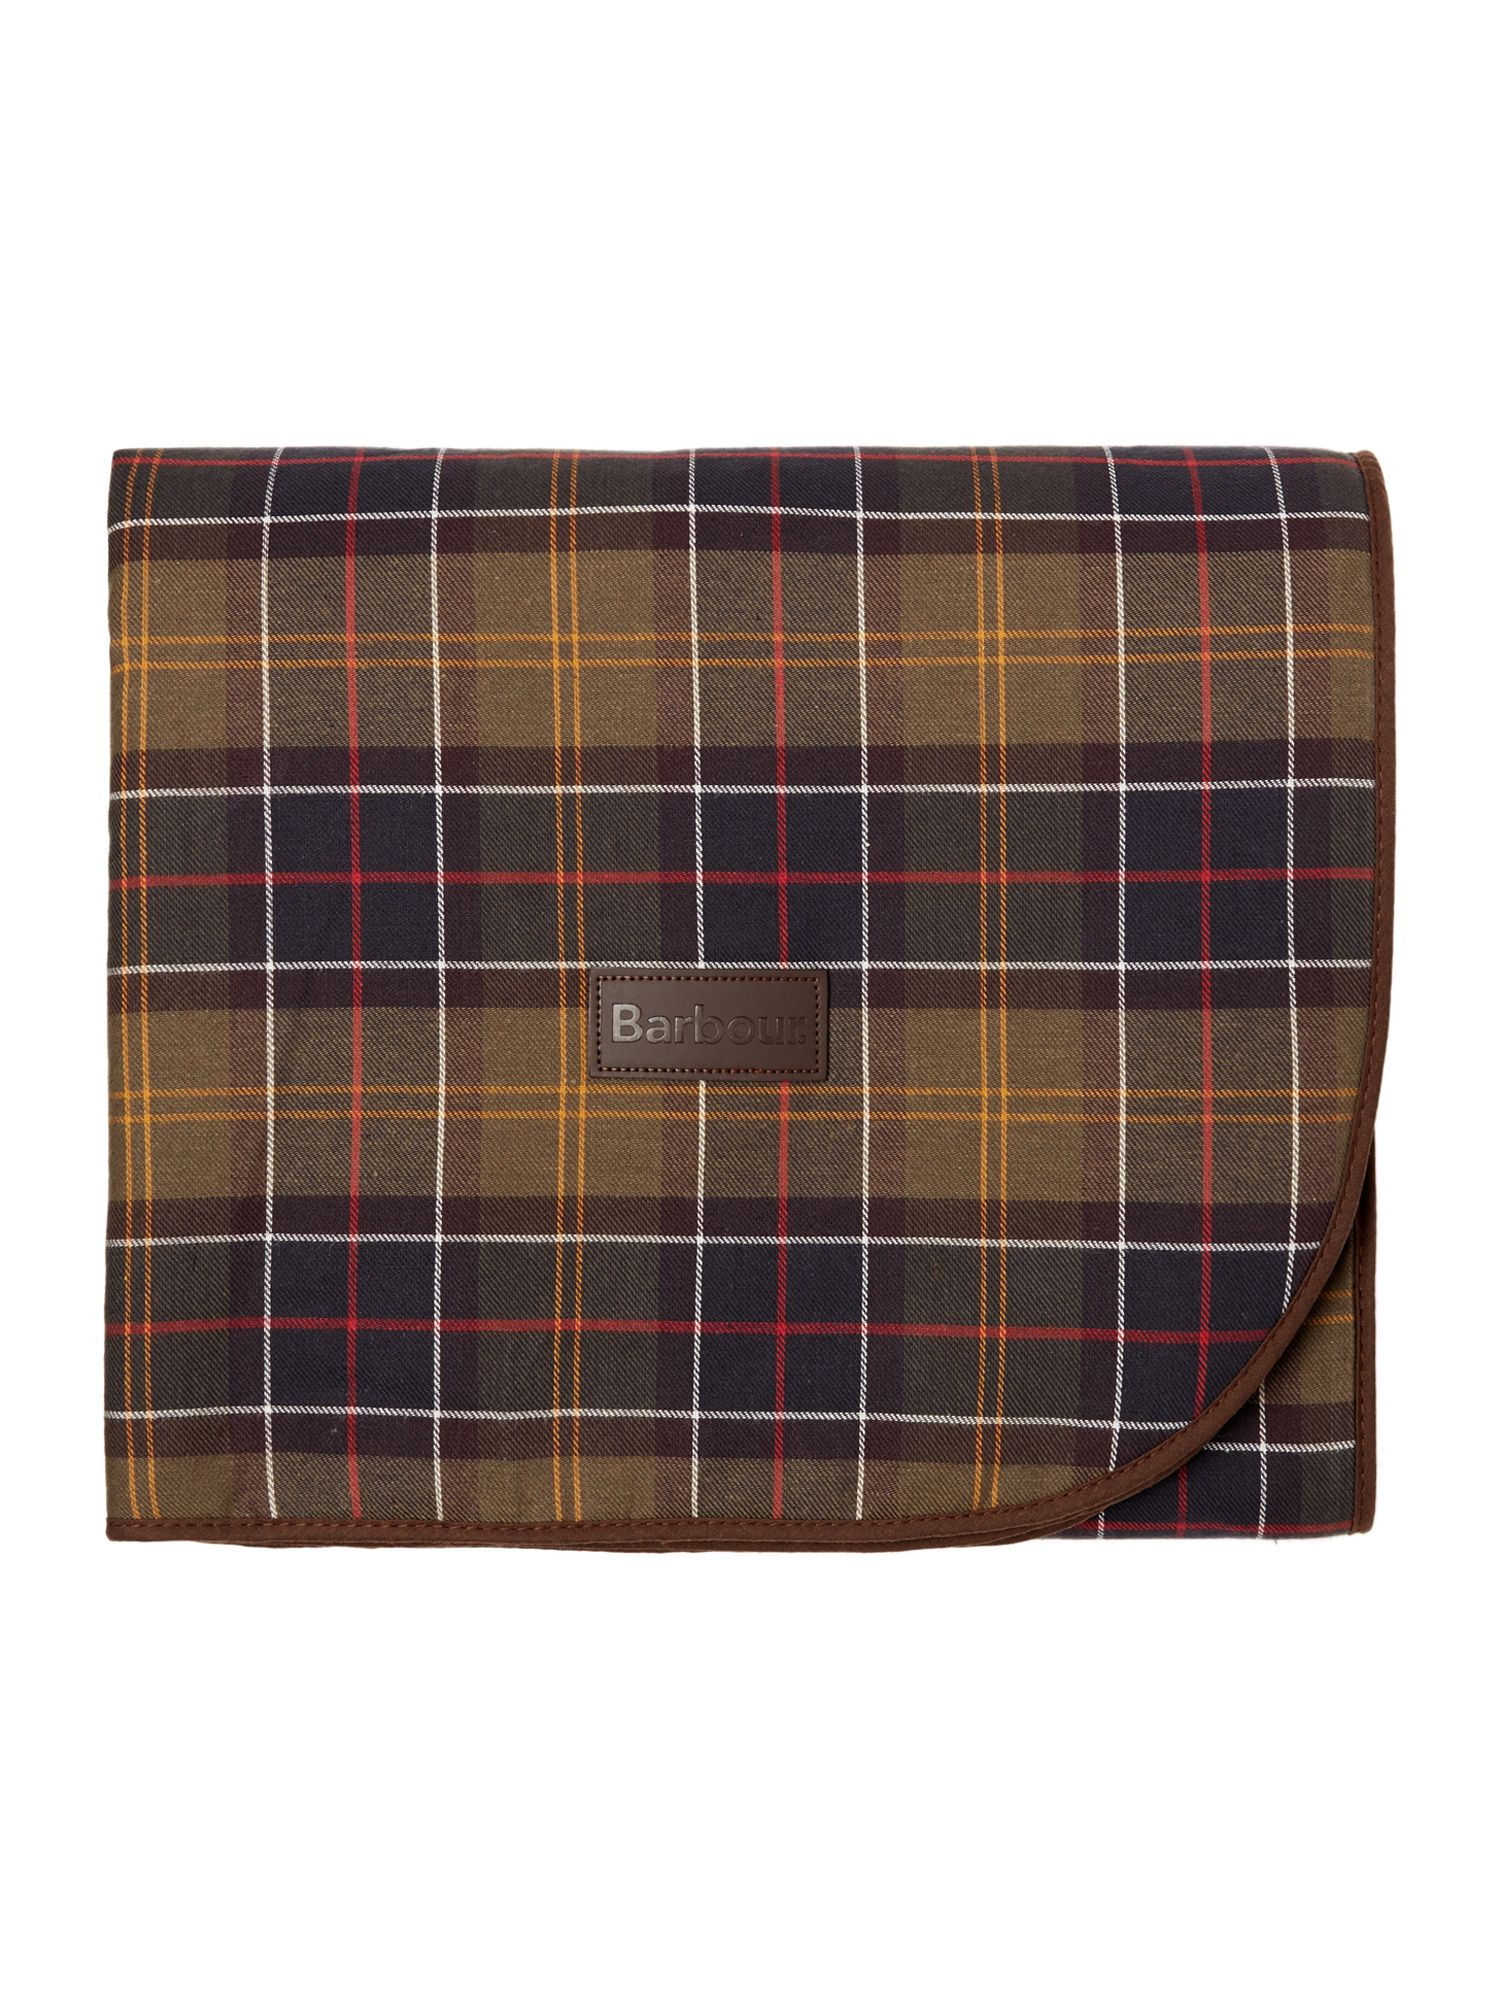 Barbour Medium Sized Dog Blanket